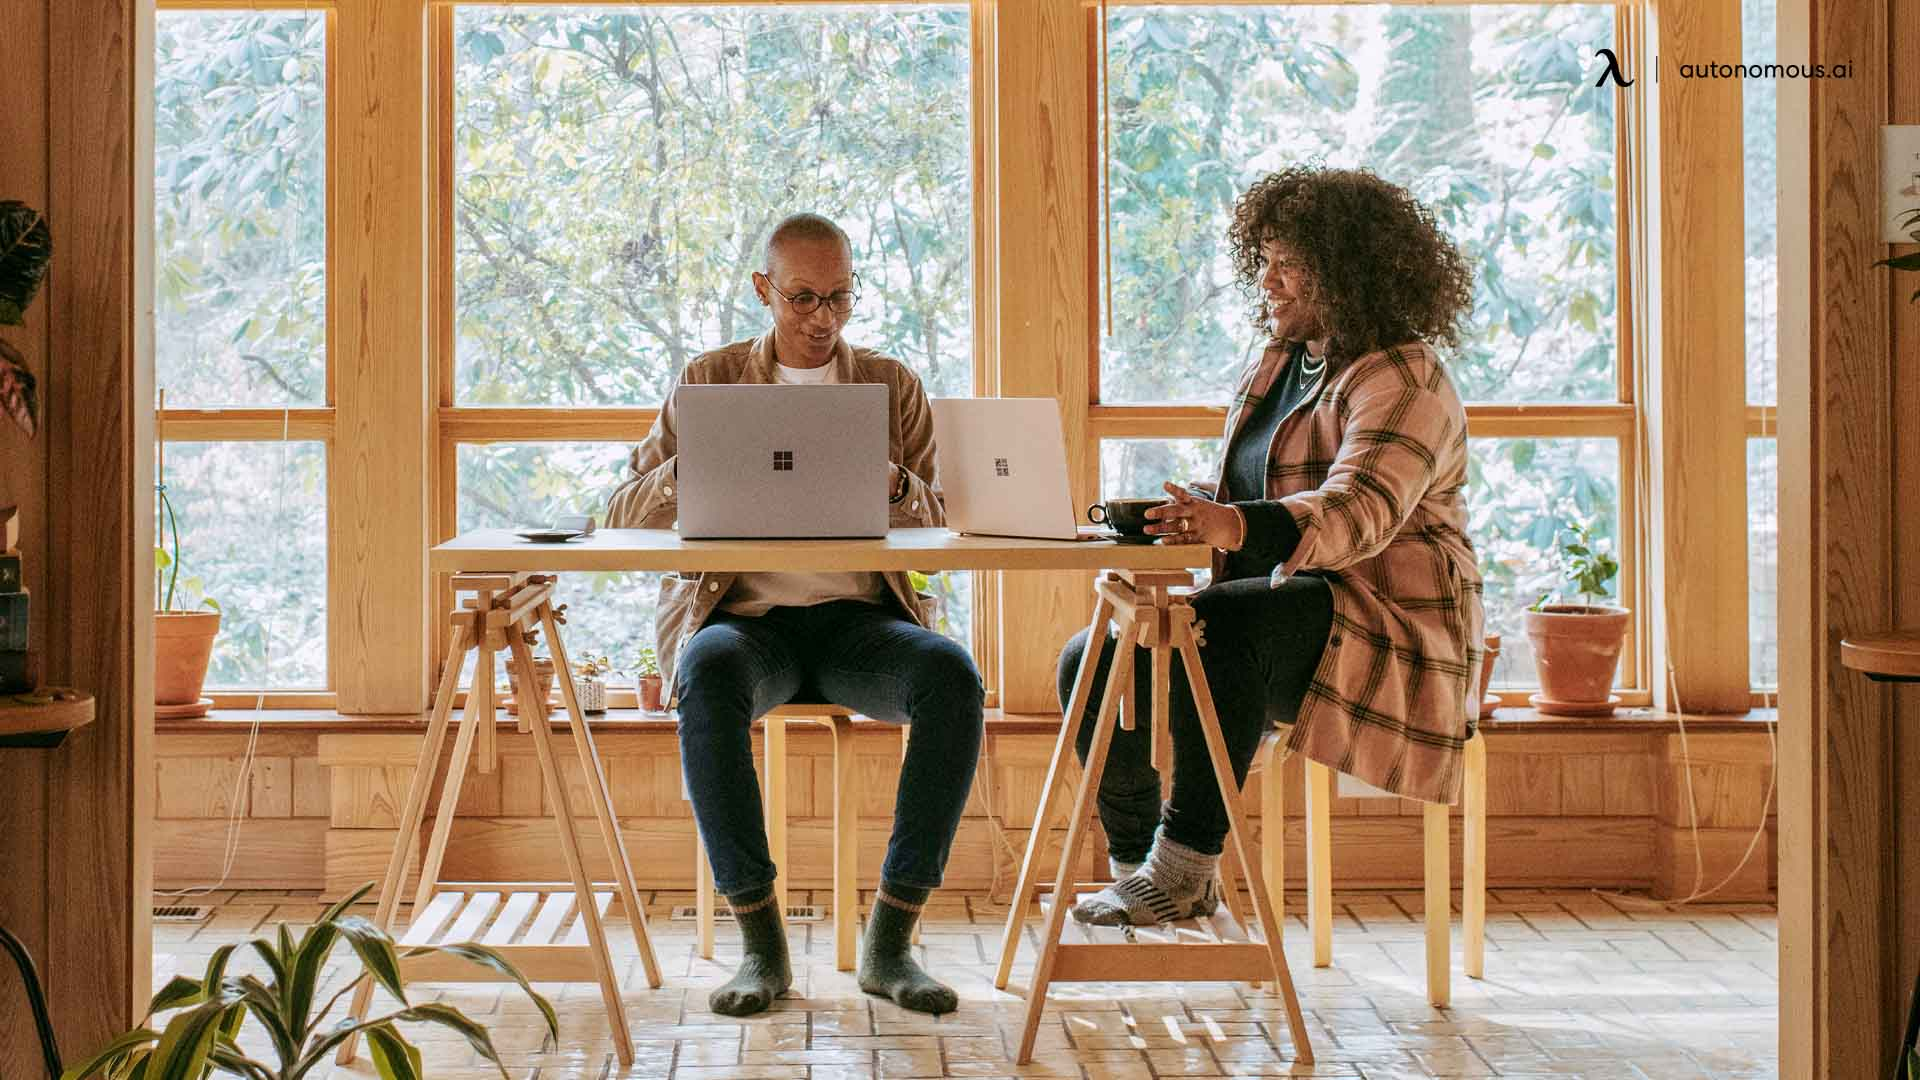 How Can You Make a Hybrid Workplace?